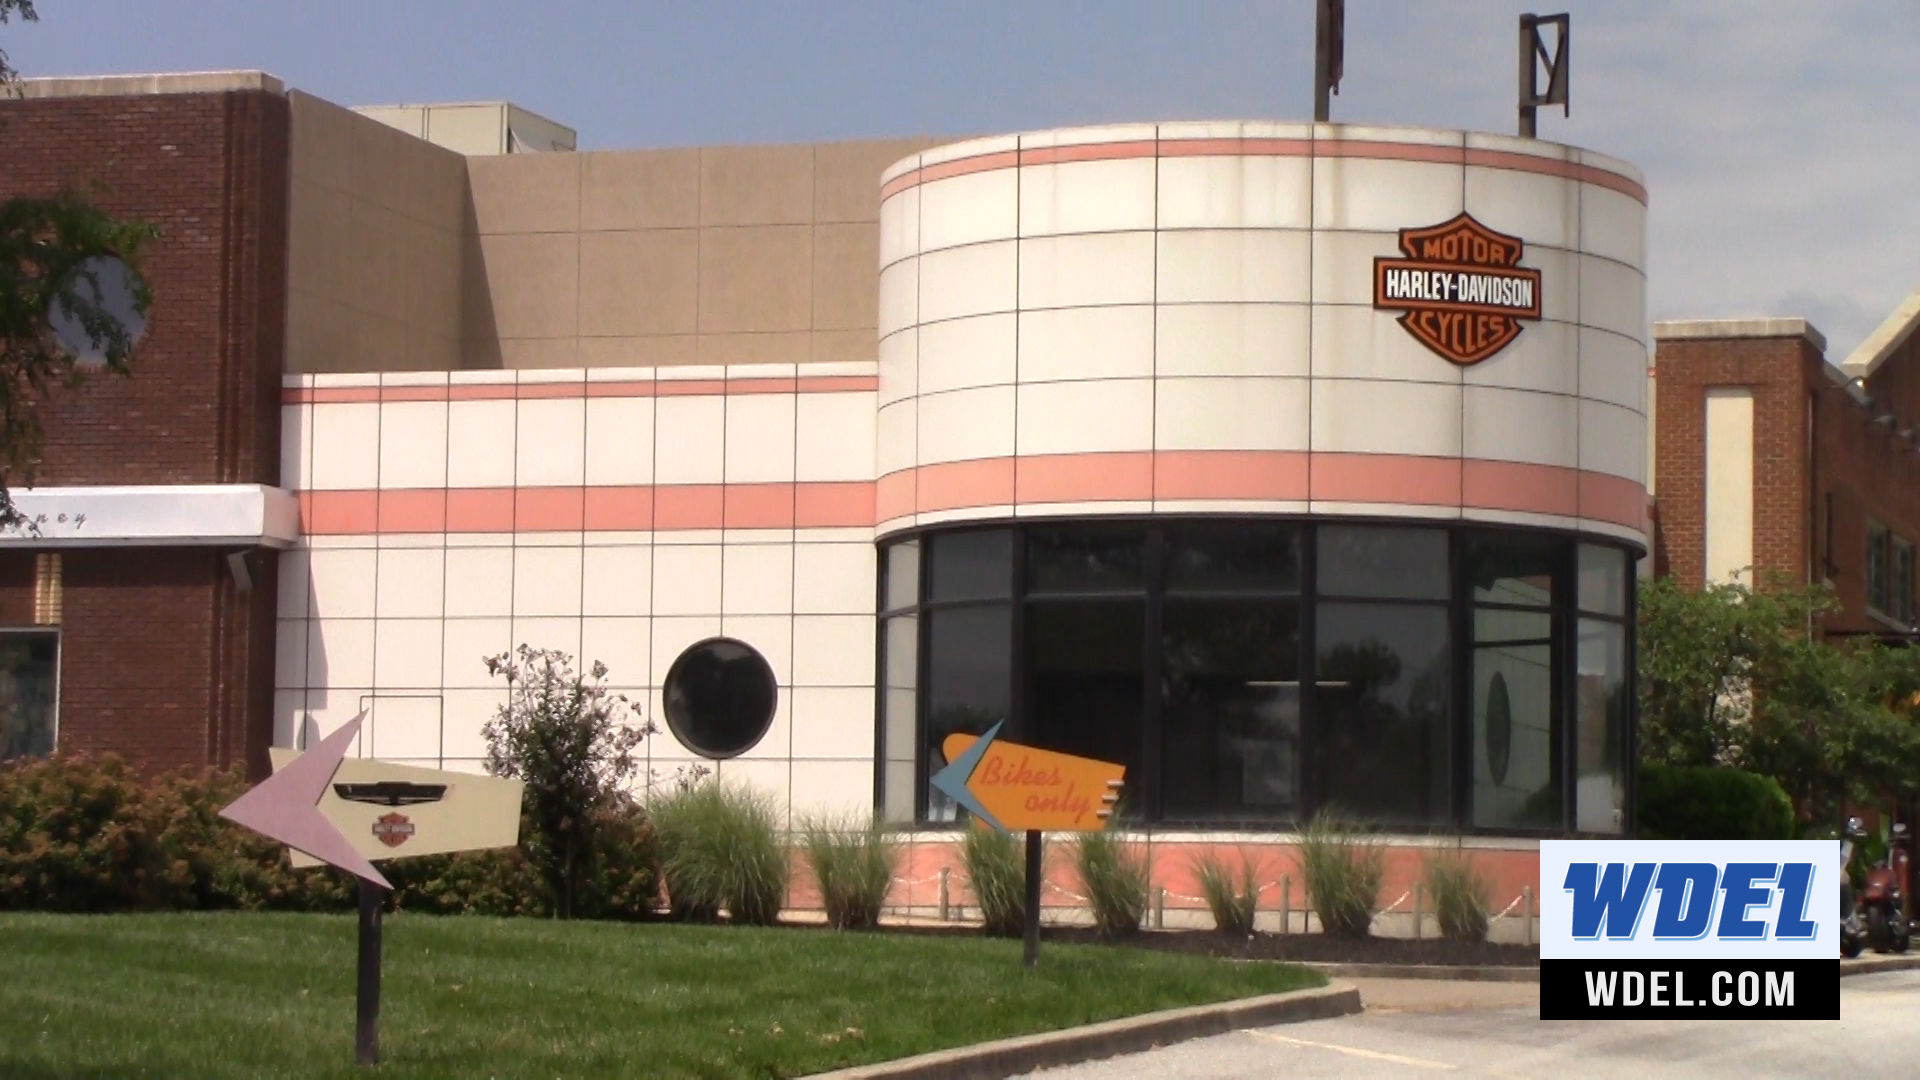 VIDEO | 'It's going to be fabulous': Harley-Davidson to relocate from New Castle to Middletown | WDEL